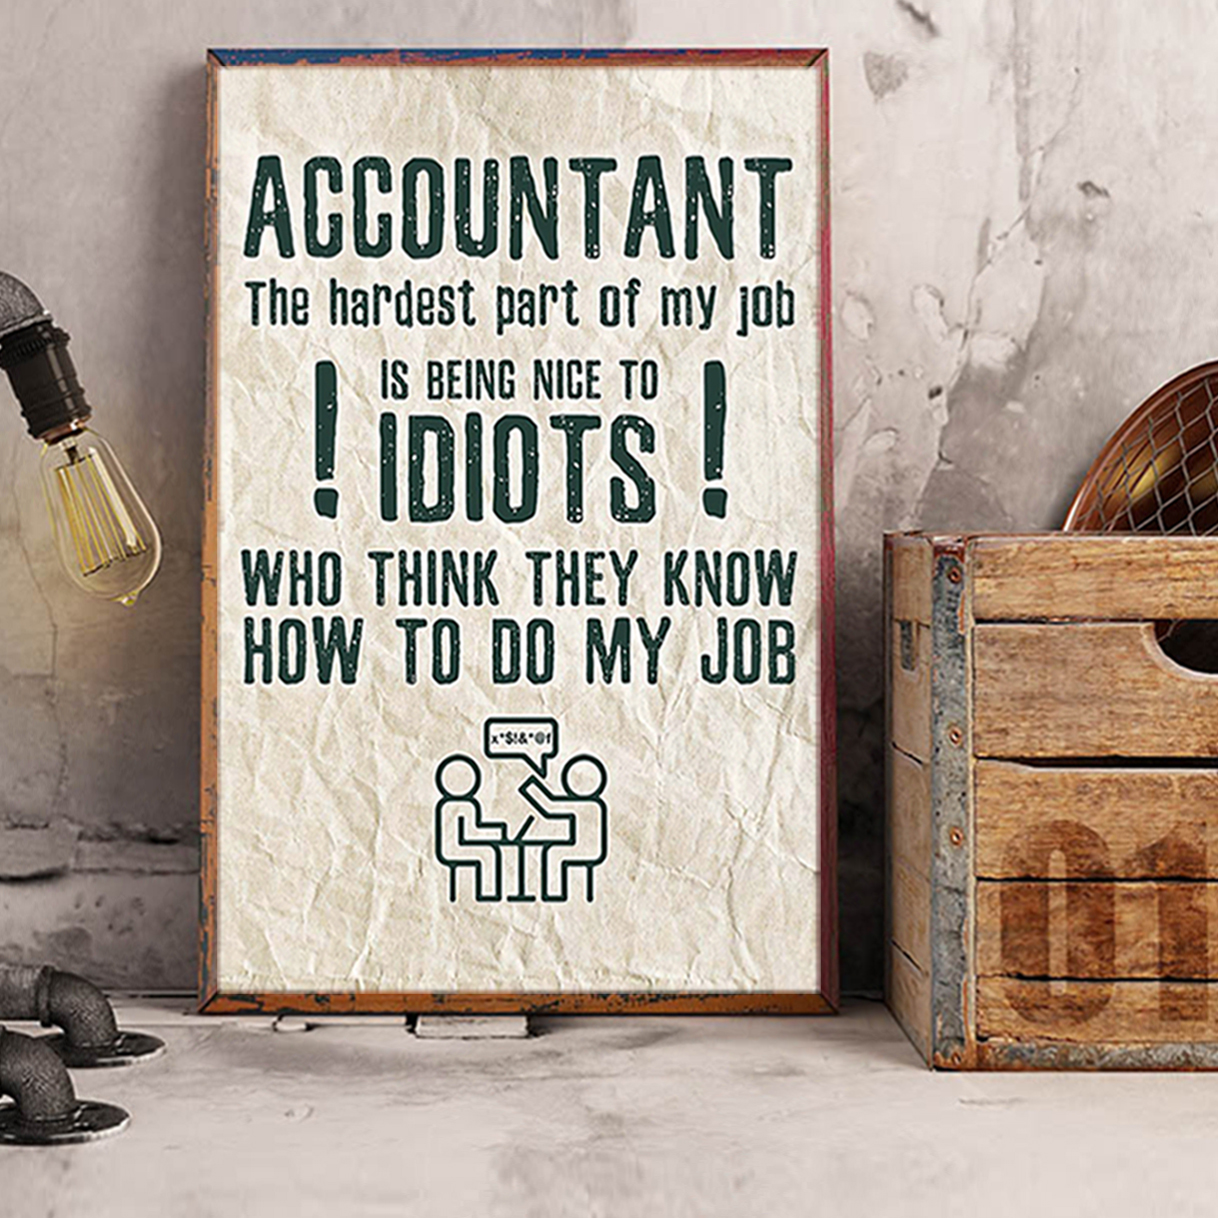 Accountant the hardest part of my job is being nice to idiots poster A1